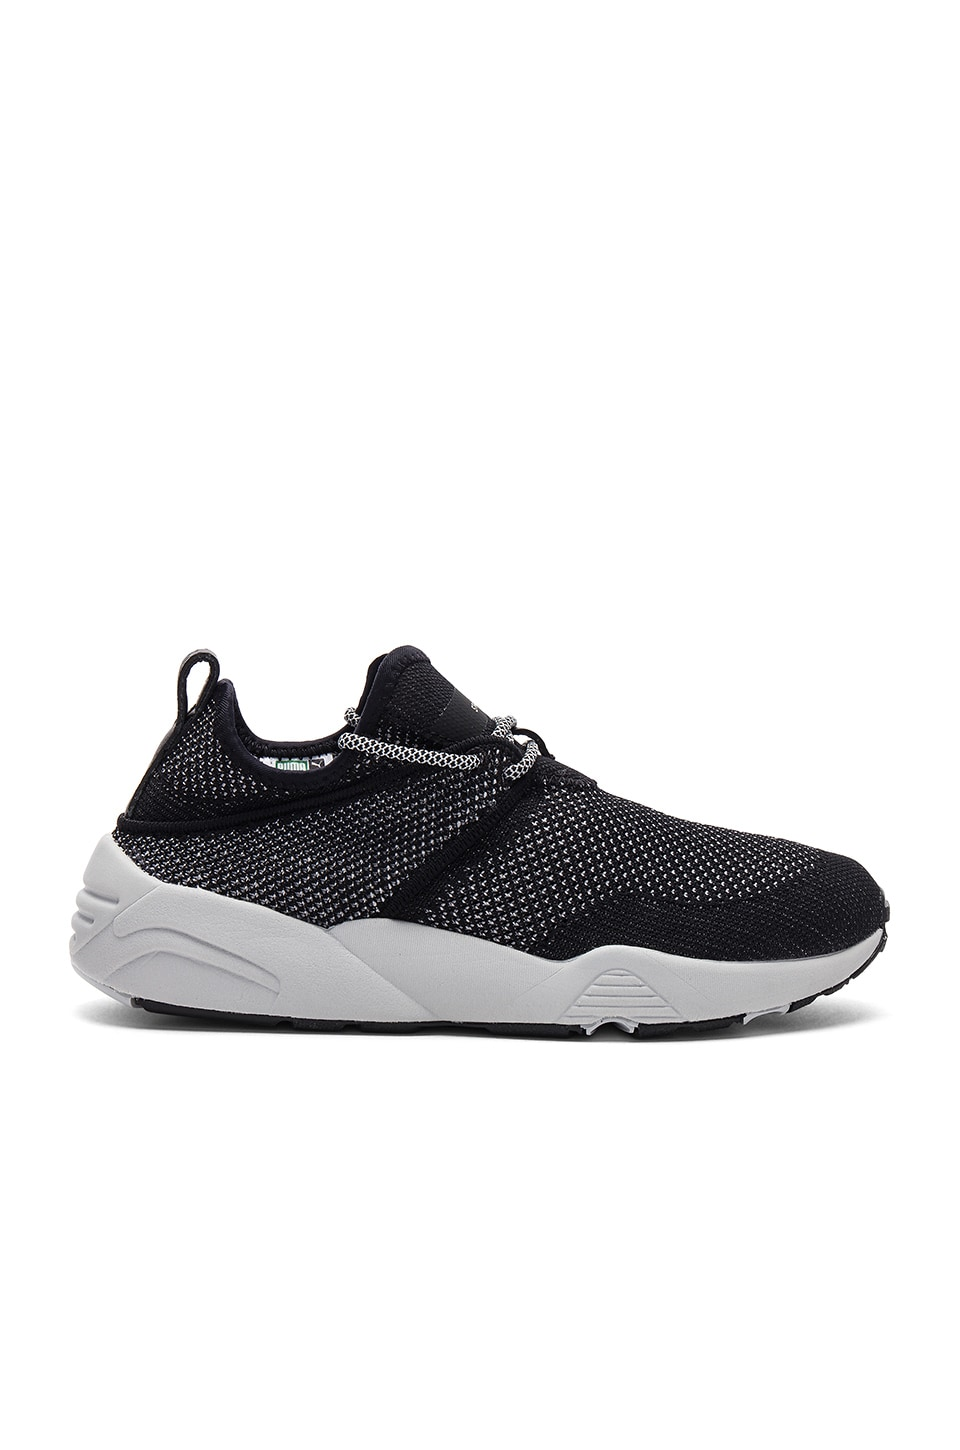 x Stampd Trinomic Woven by Puma Select